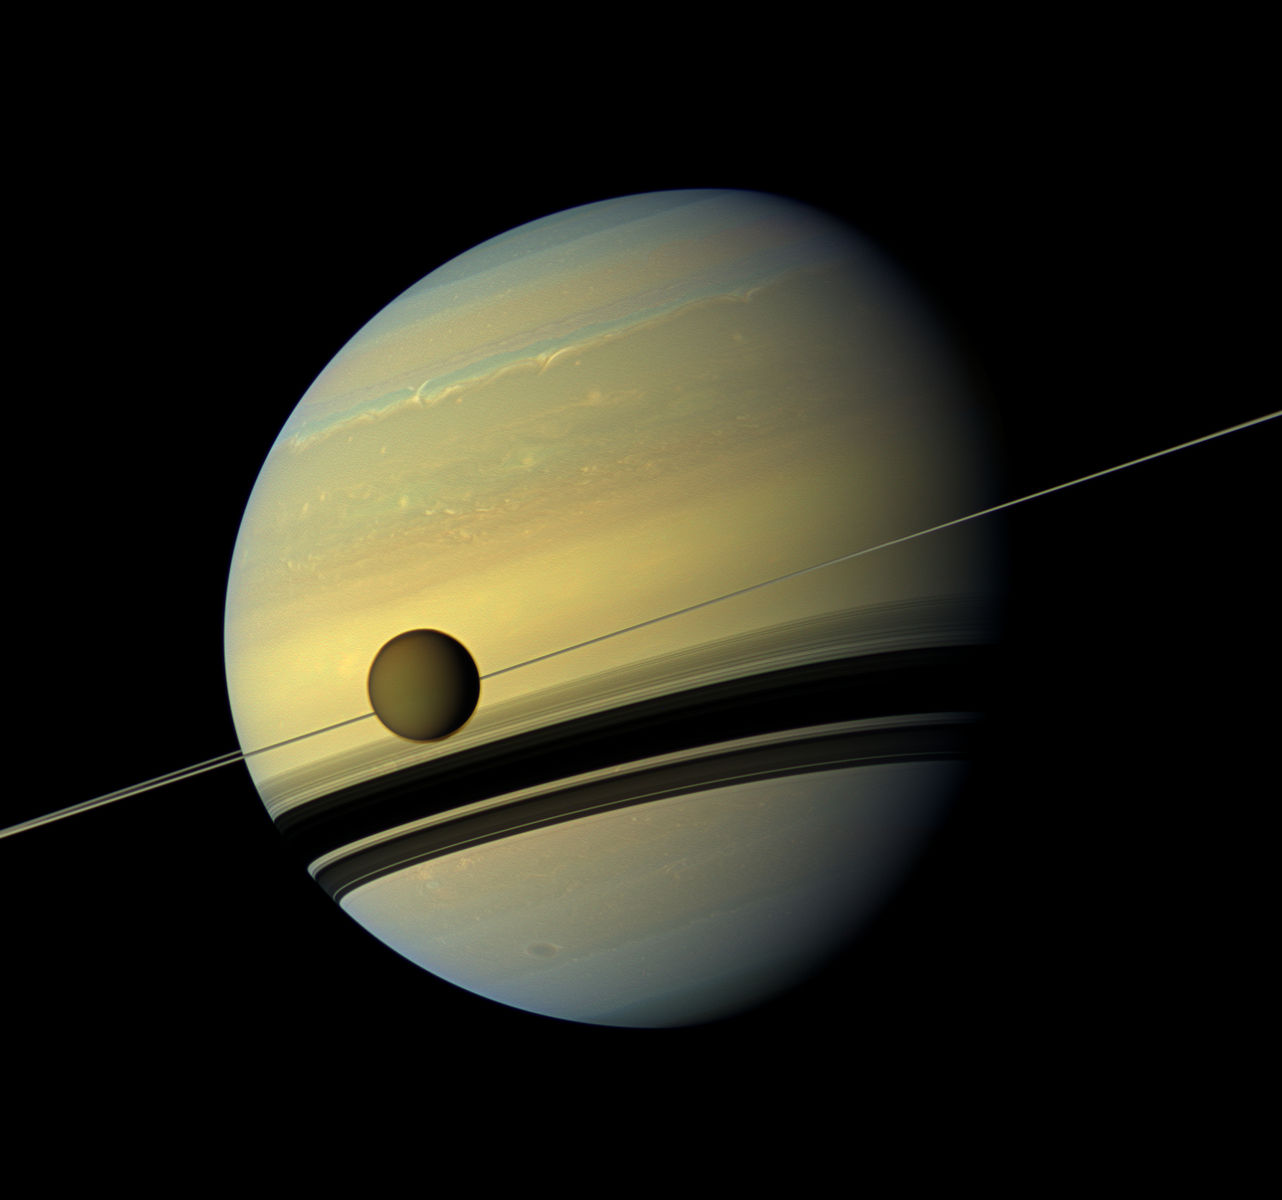 NASA Discovery Reveals Saturn's Moon Titan Drifting Away 100 Times Faster Than Previous Estimates